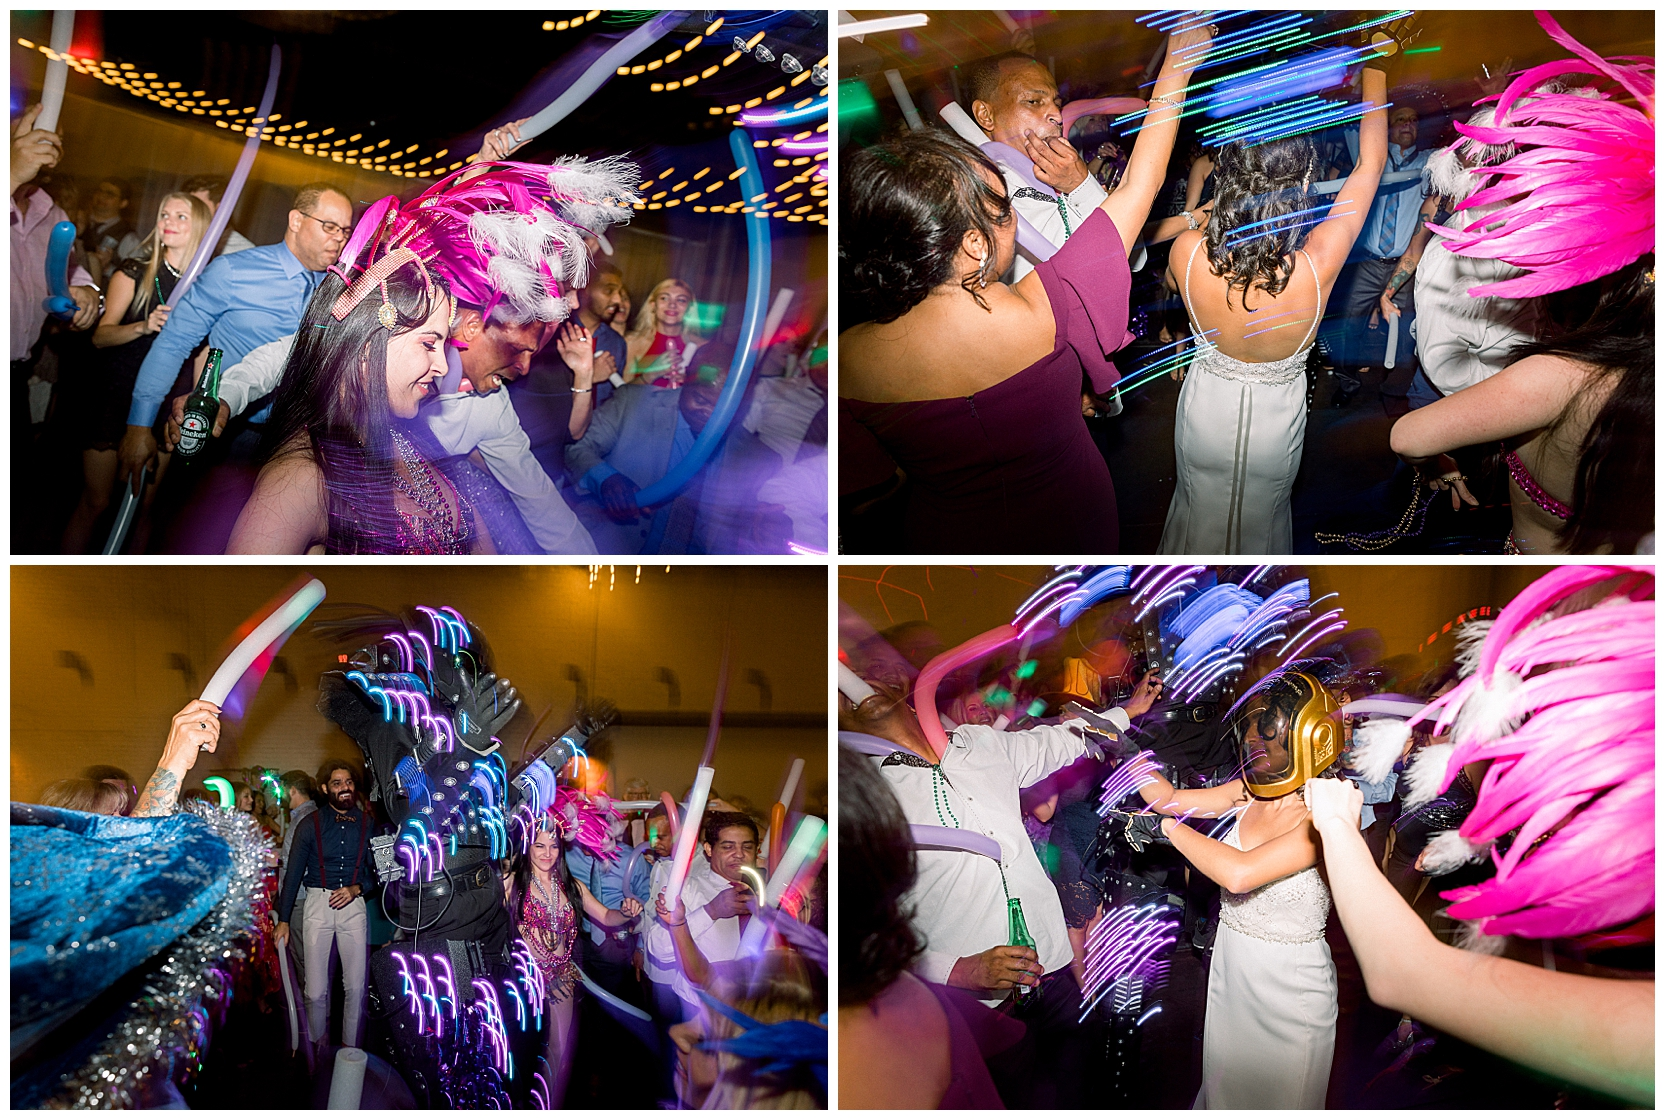 jessicafredericks_lakeland_tampa_wedding_purple_crazy hour_0093.jpg